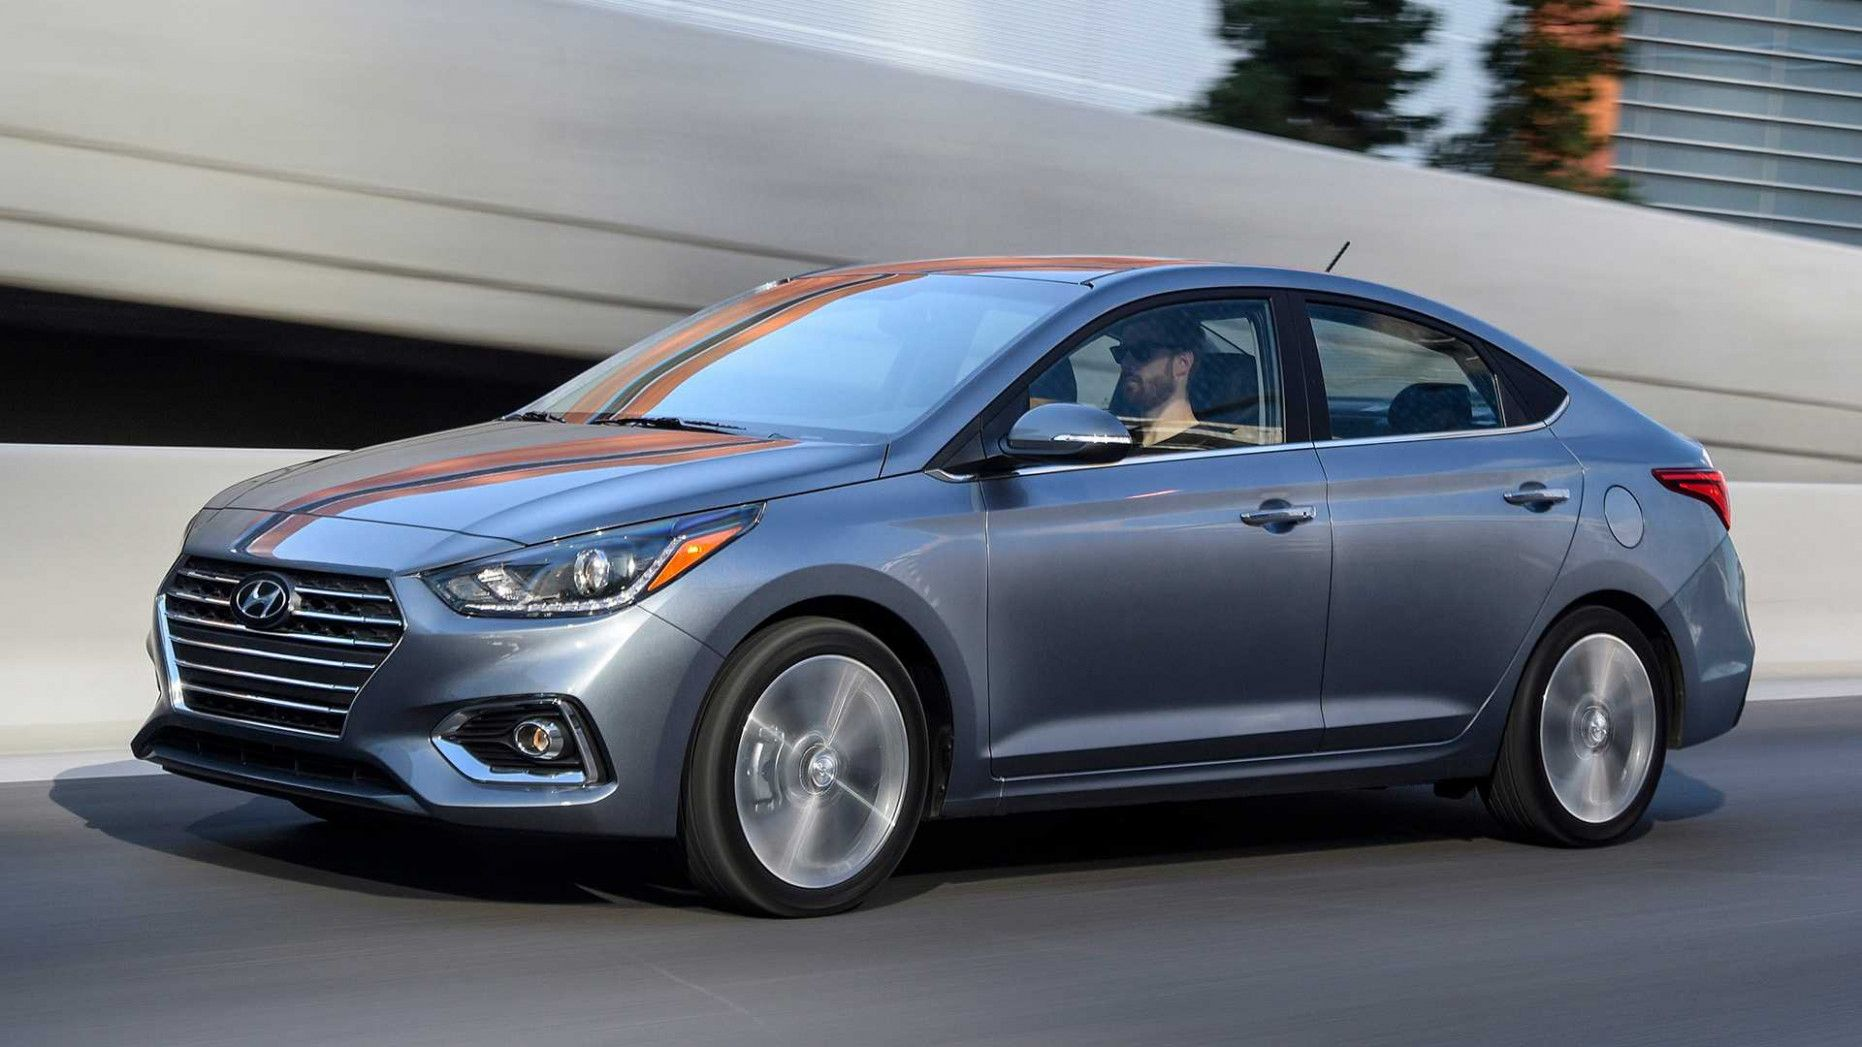 5 Hyundai Accent Gets New Engine Gearbox For Better Fuel Hyundai Accent Hyundai New Engine